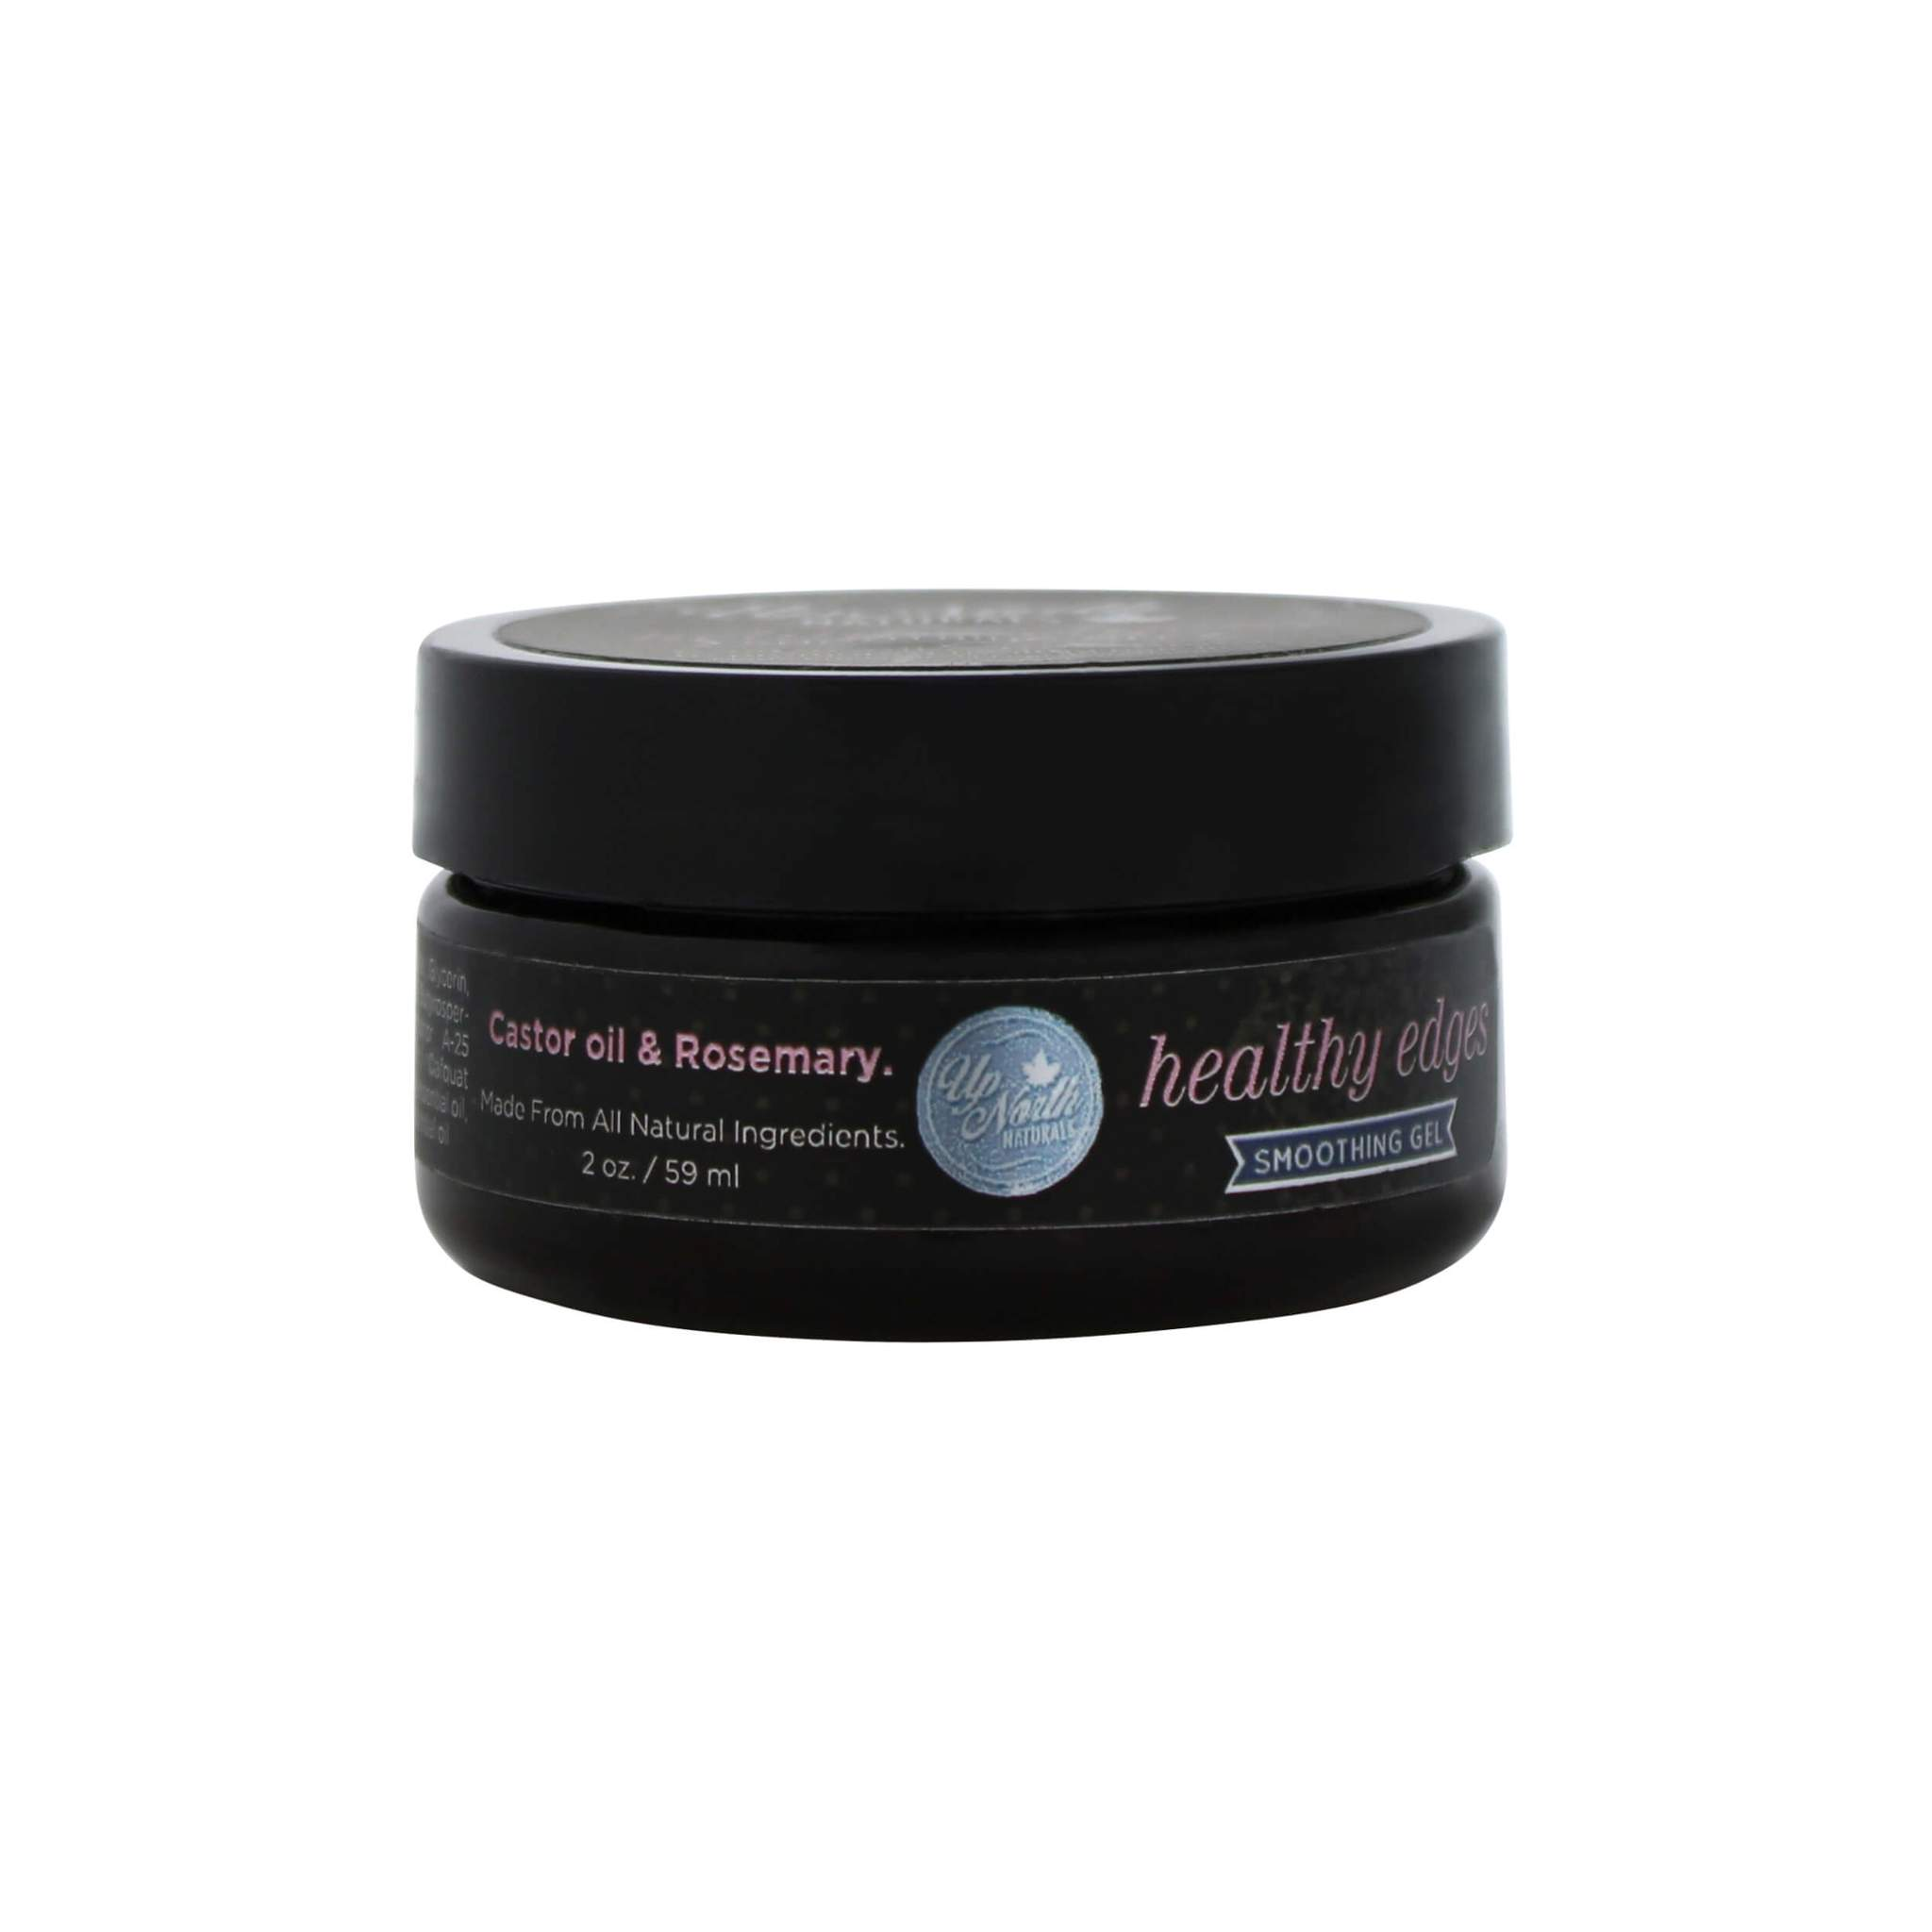 Up North Naturals | Healthy Edges Smoothing Gel